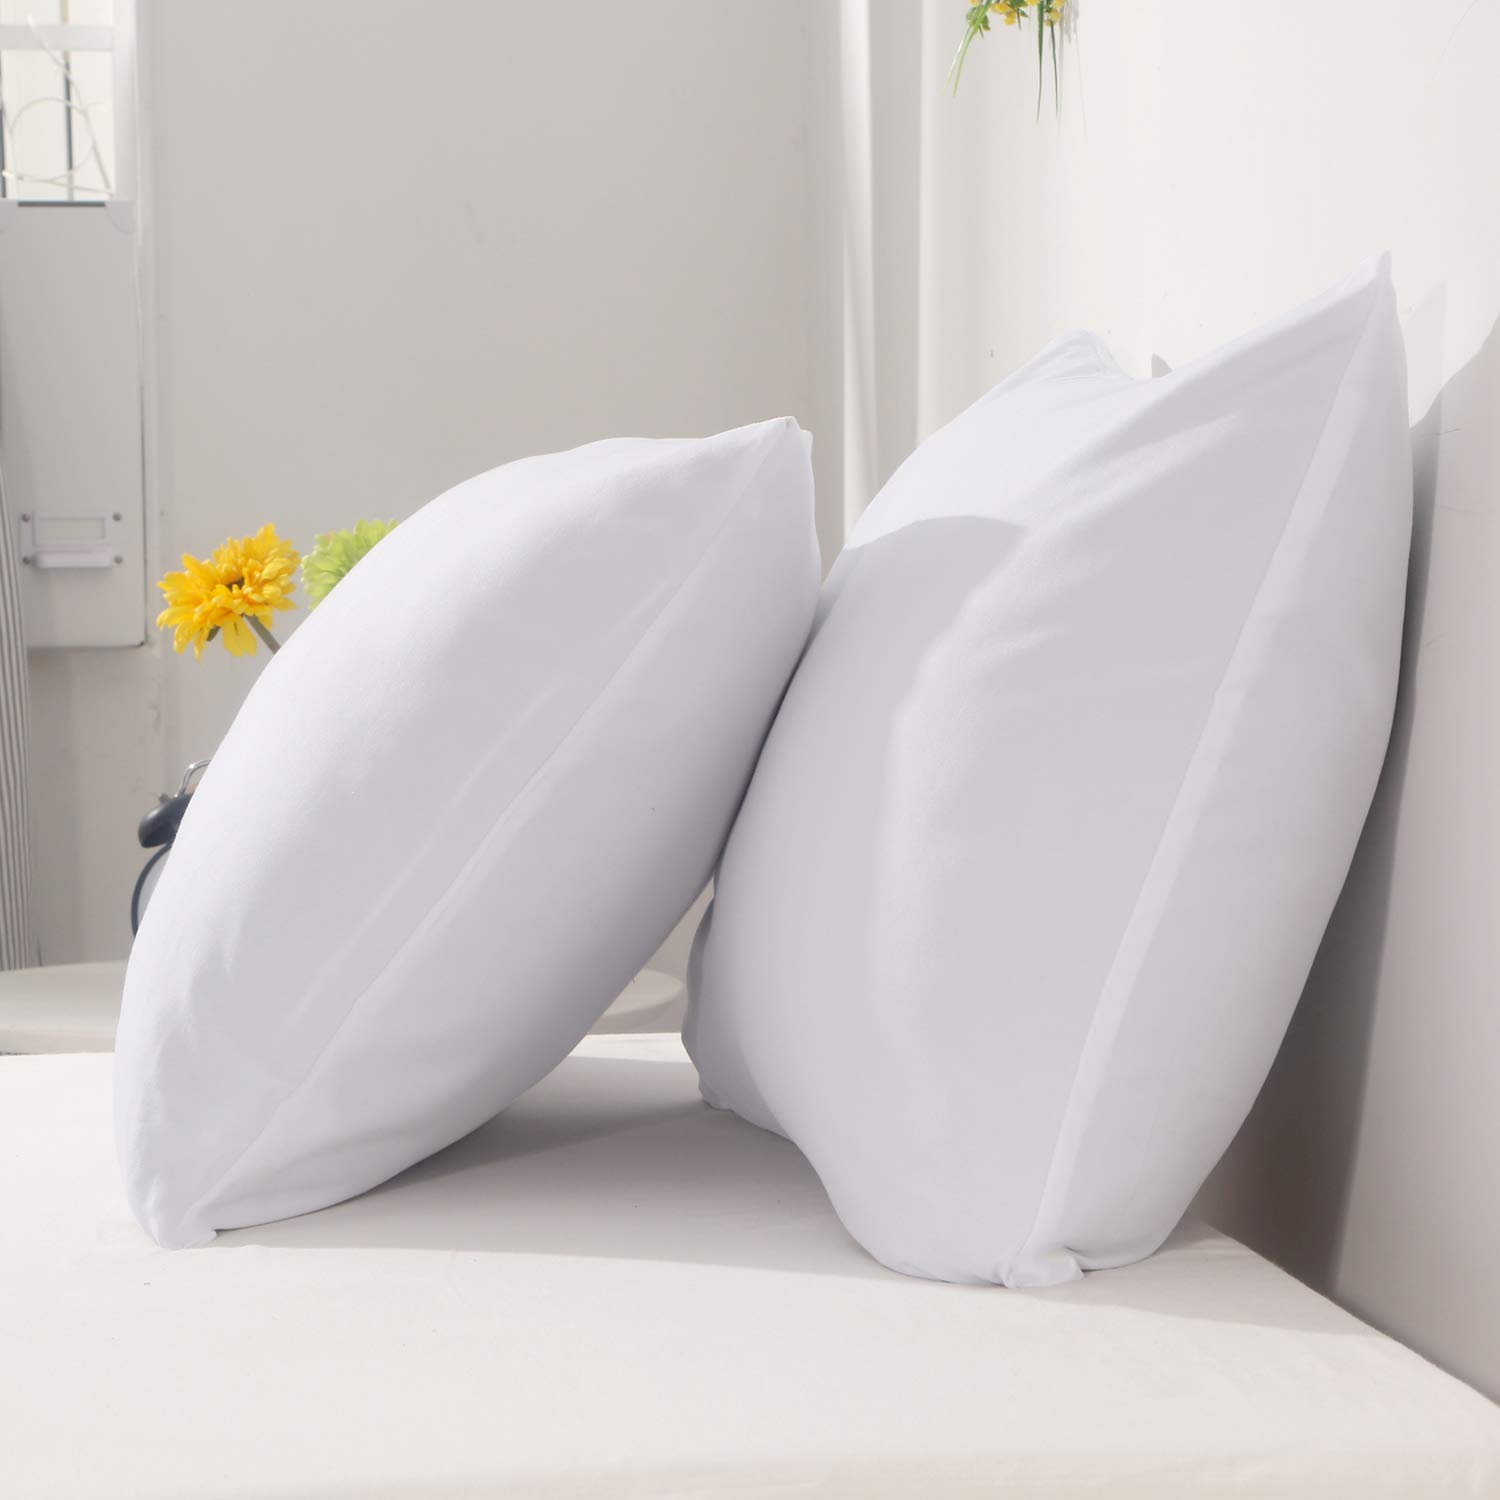 Solid White 20 x 30 inch Soft Comfortable Microfiber for Home Hotel Bed NANKO Queen Pillowcases 2 Pack,Bed Pillow Shams//Covers with Zipper